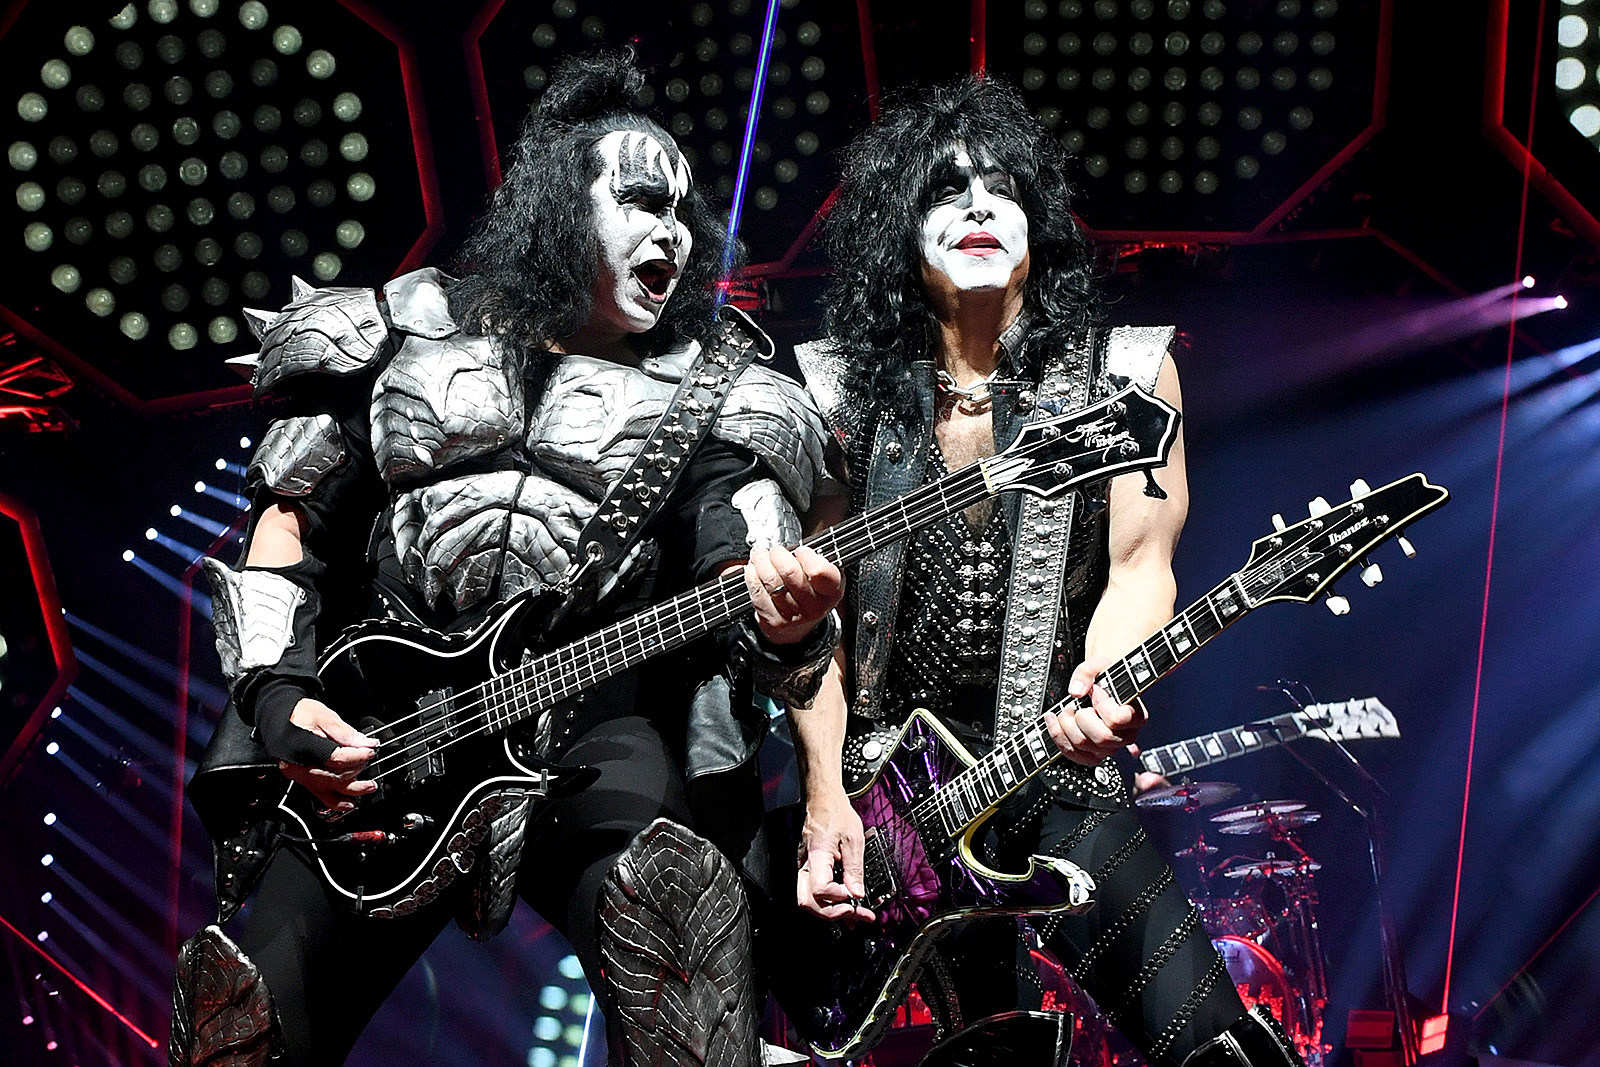 Wicked Tour 2020.Kiss Reveal 75 New 2020 End Of The Road Tour Dates